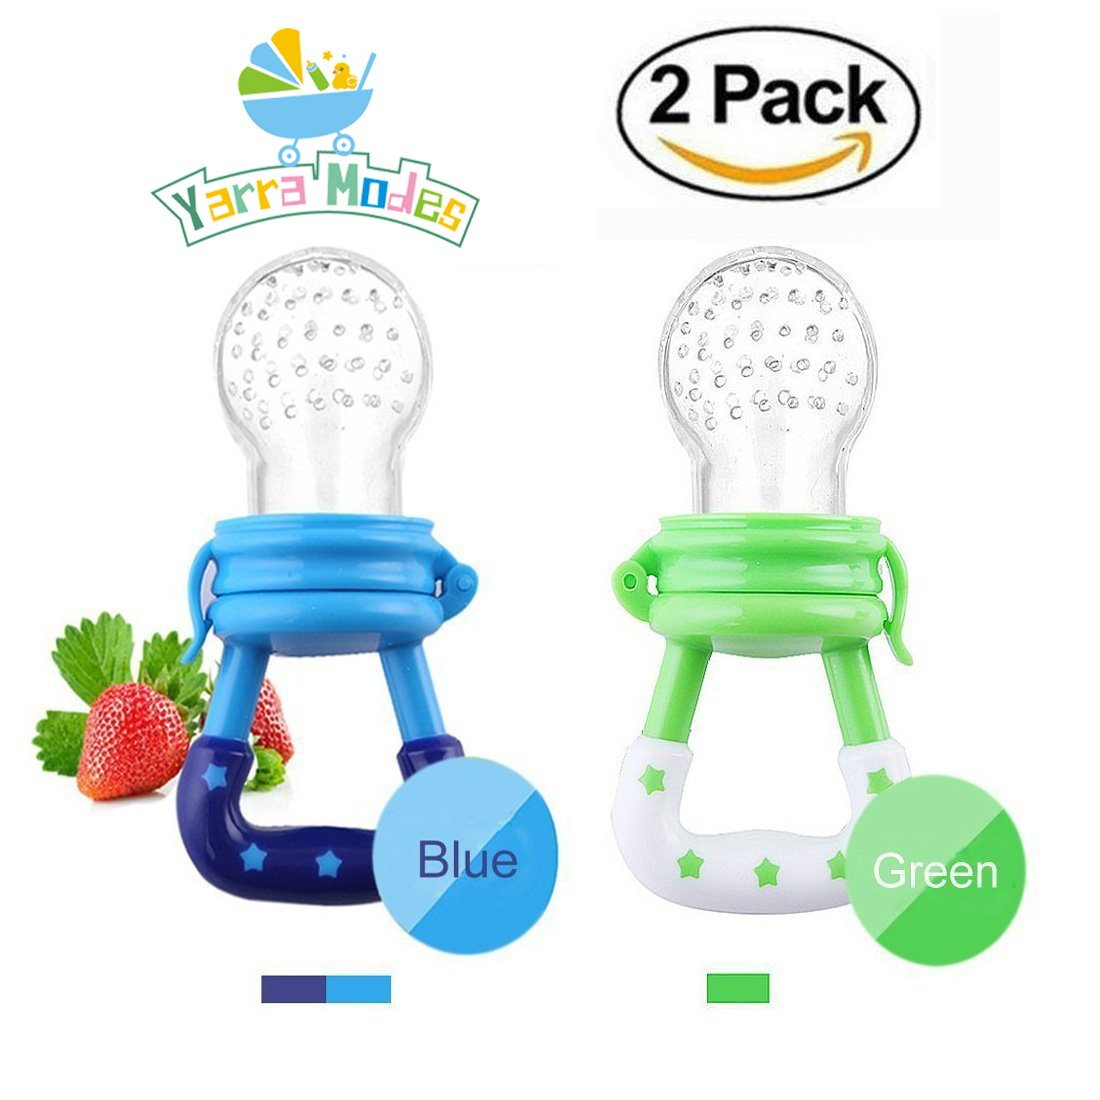 Baby Fruit Feeder Pacifier Baby Food Feeder Silicone Mesh Baby Feeder 2 PCS with Handgrip for Boys and Girls 2 PCS (6-12 months, Blue,Green)